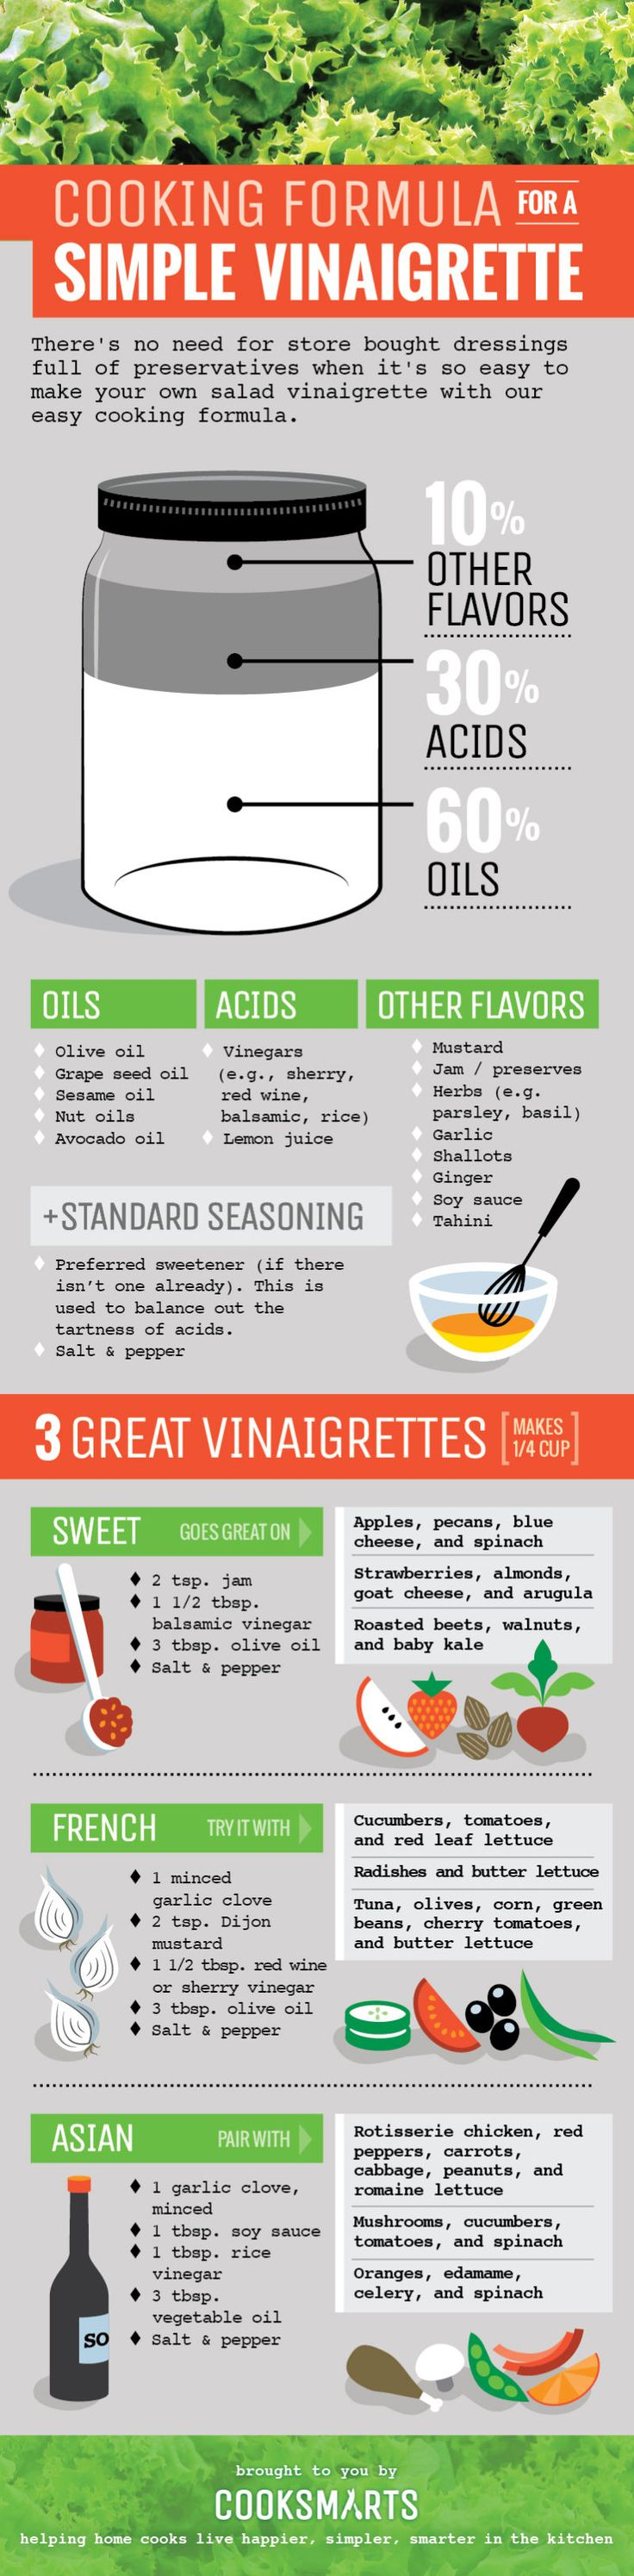 Make Your Own Awesome Salad Dressing with This Simple Cooking Formula by cooksmart via lifehacker #Infographic #Vinaigrette